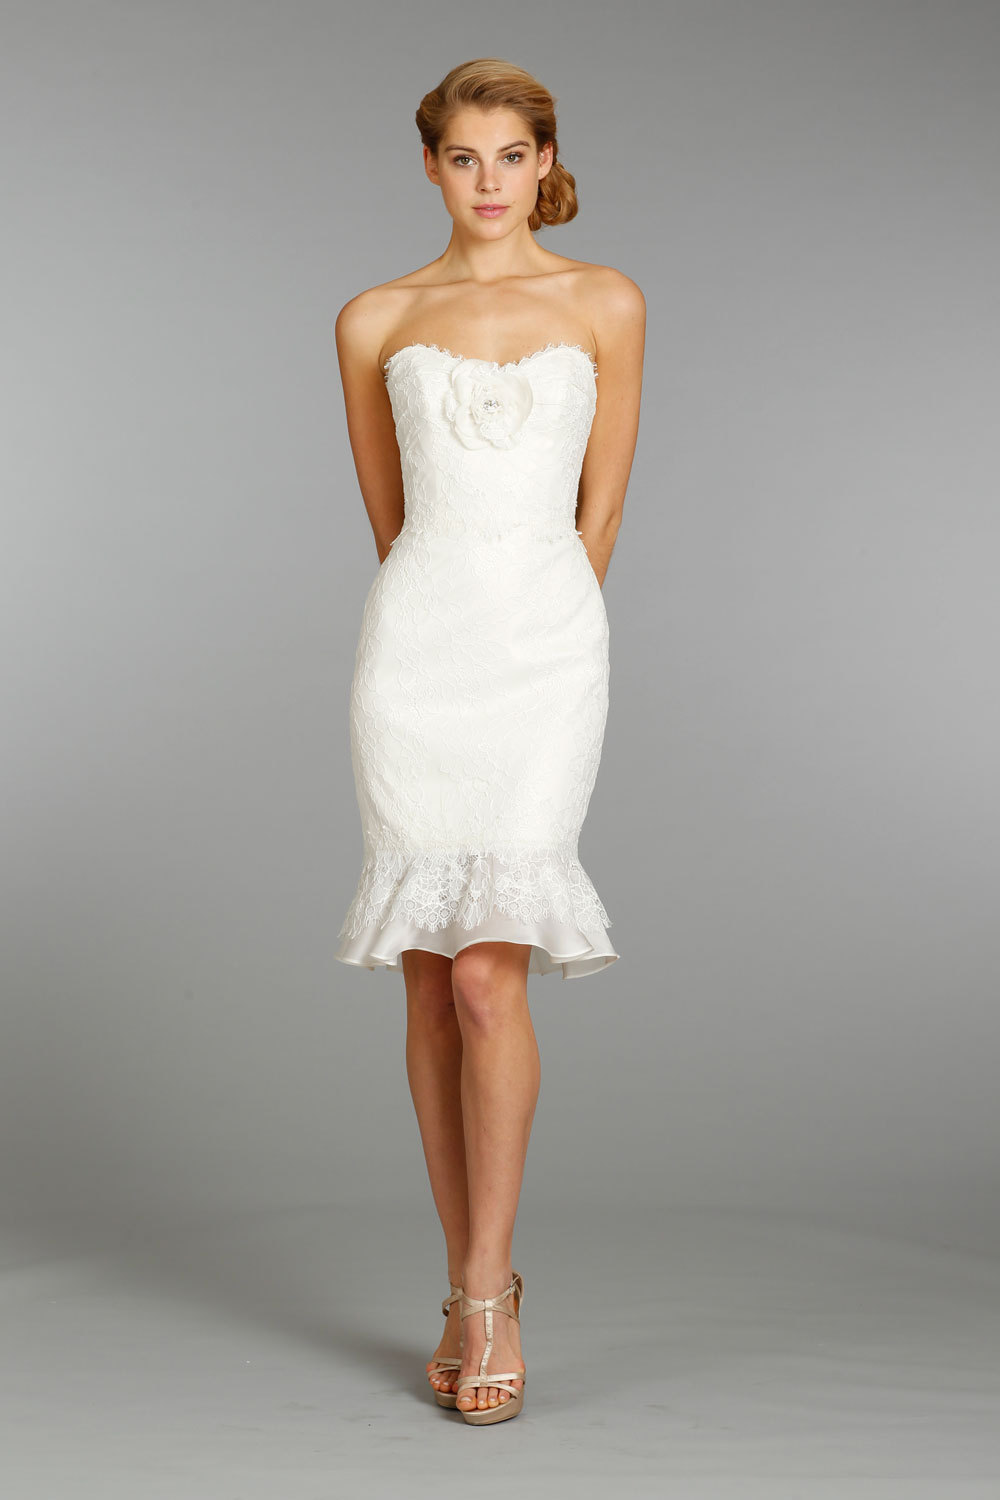 Alvina Valenta wedding dress Fall 2013 Bridal